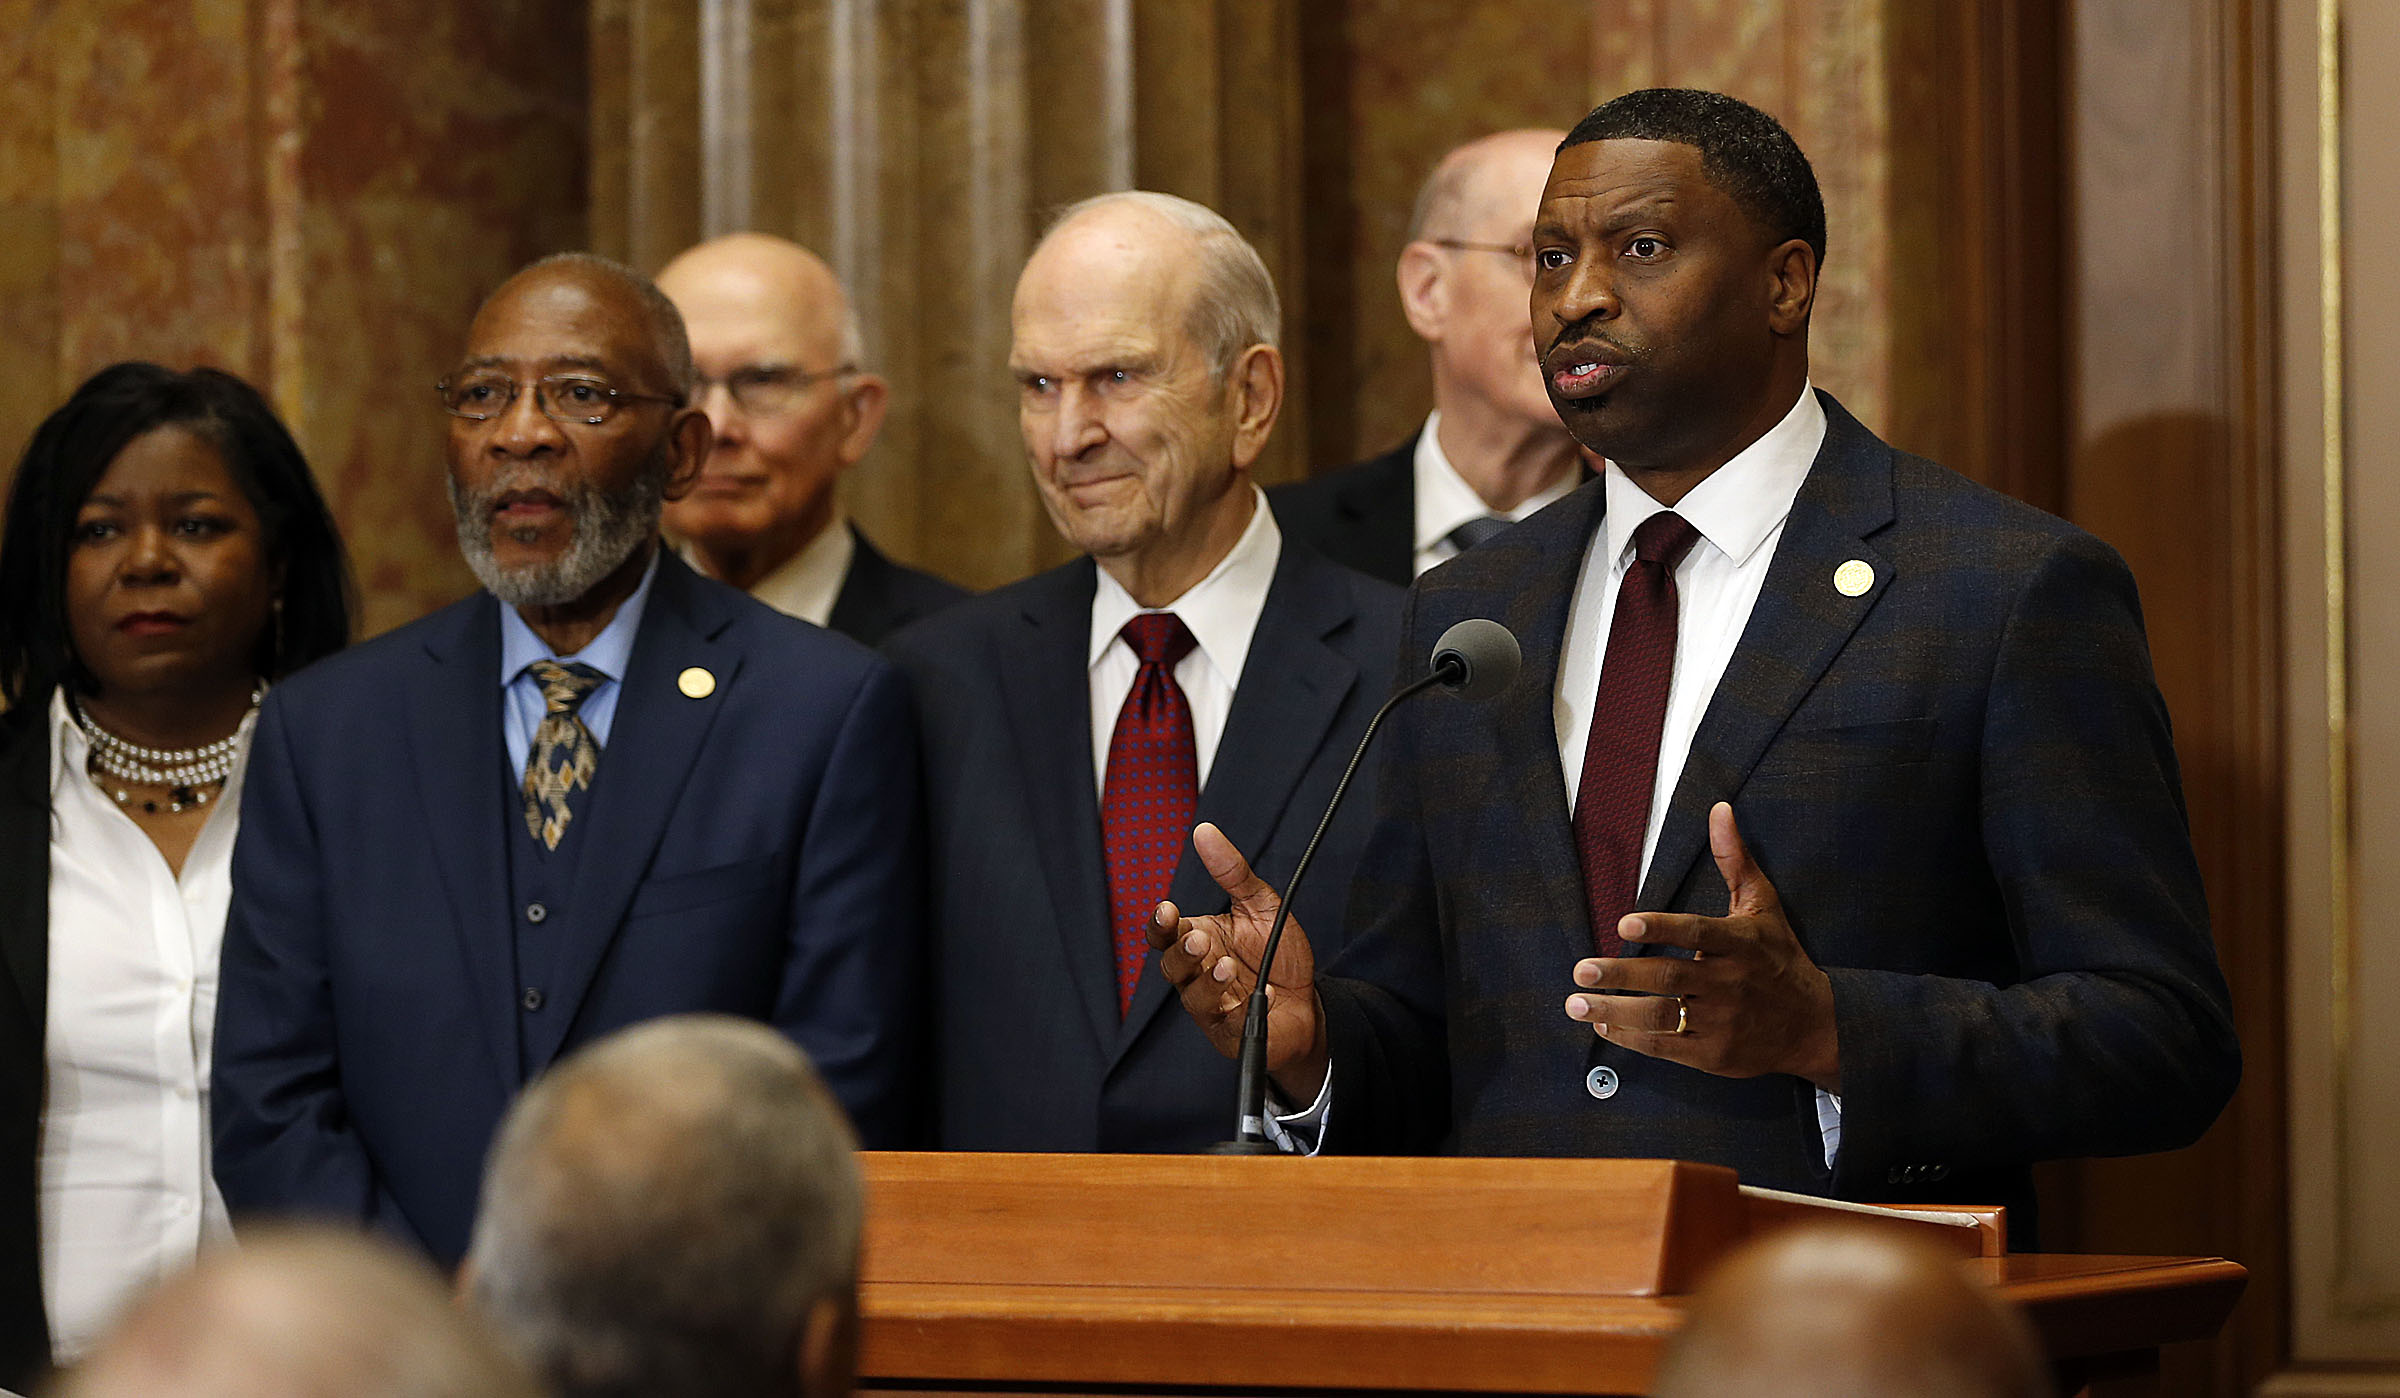 Derrick Johnson, president and CEO of the NAACP, speaks with President Russell M. Nelson of The Church of Jesus Christ of Latter-day Saints at left during a press conference in Salt Lake City on Thursday, May 17, 2018.